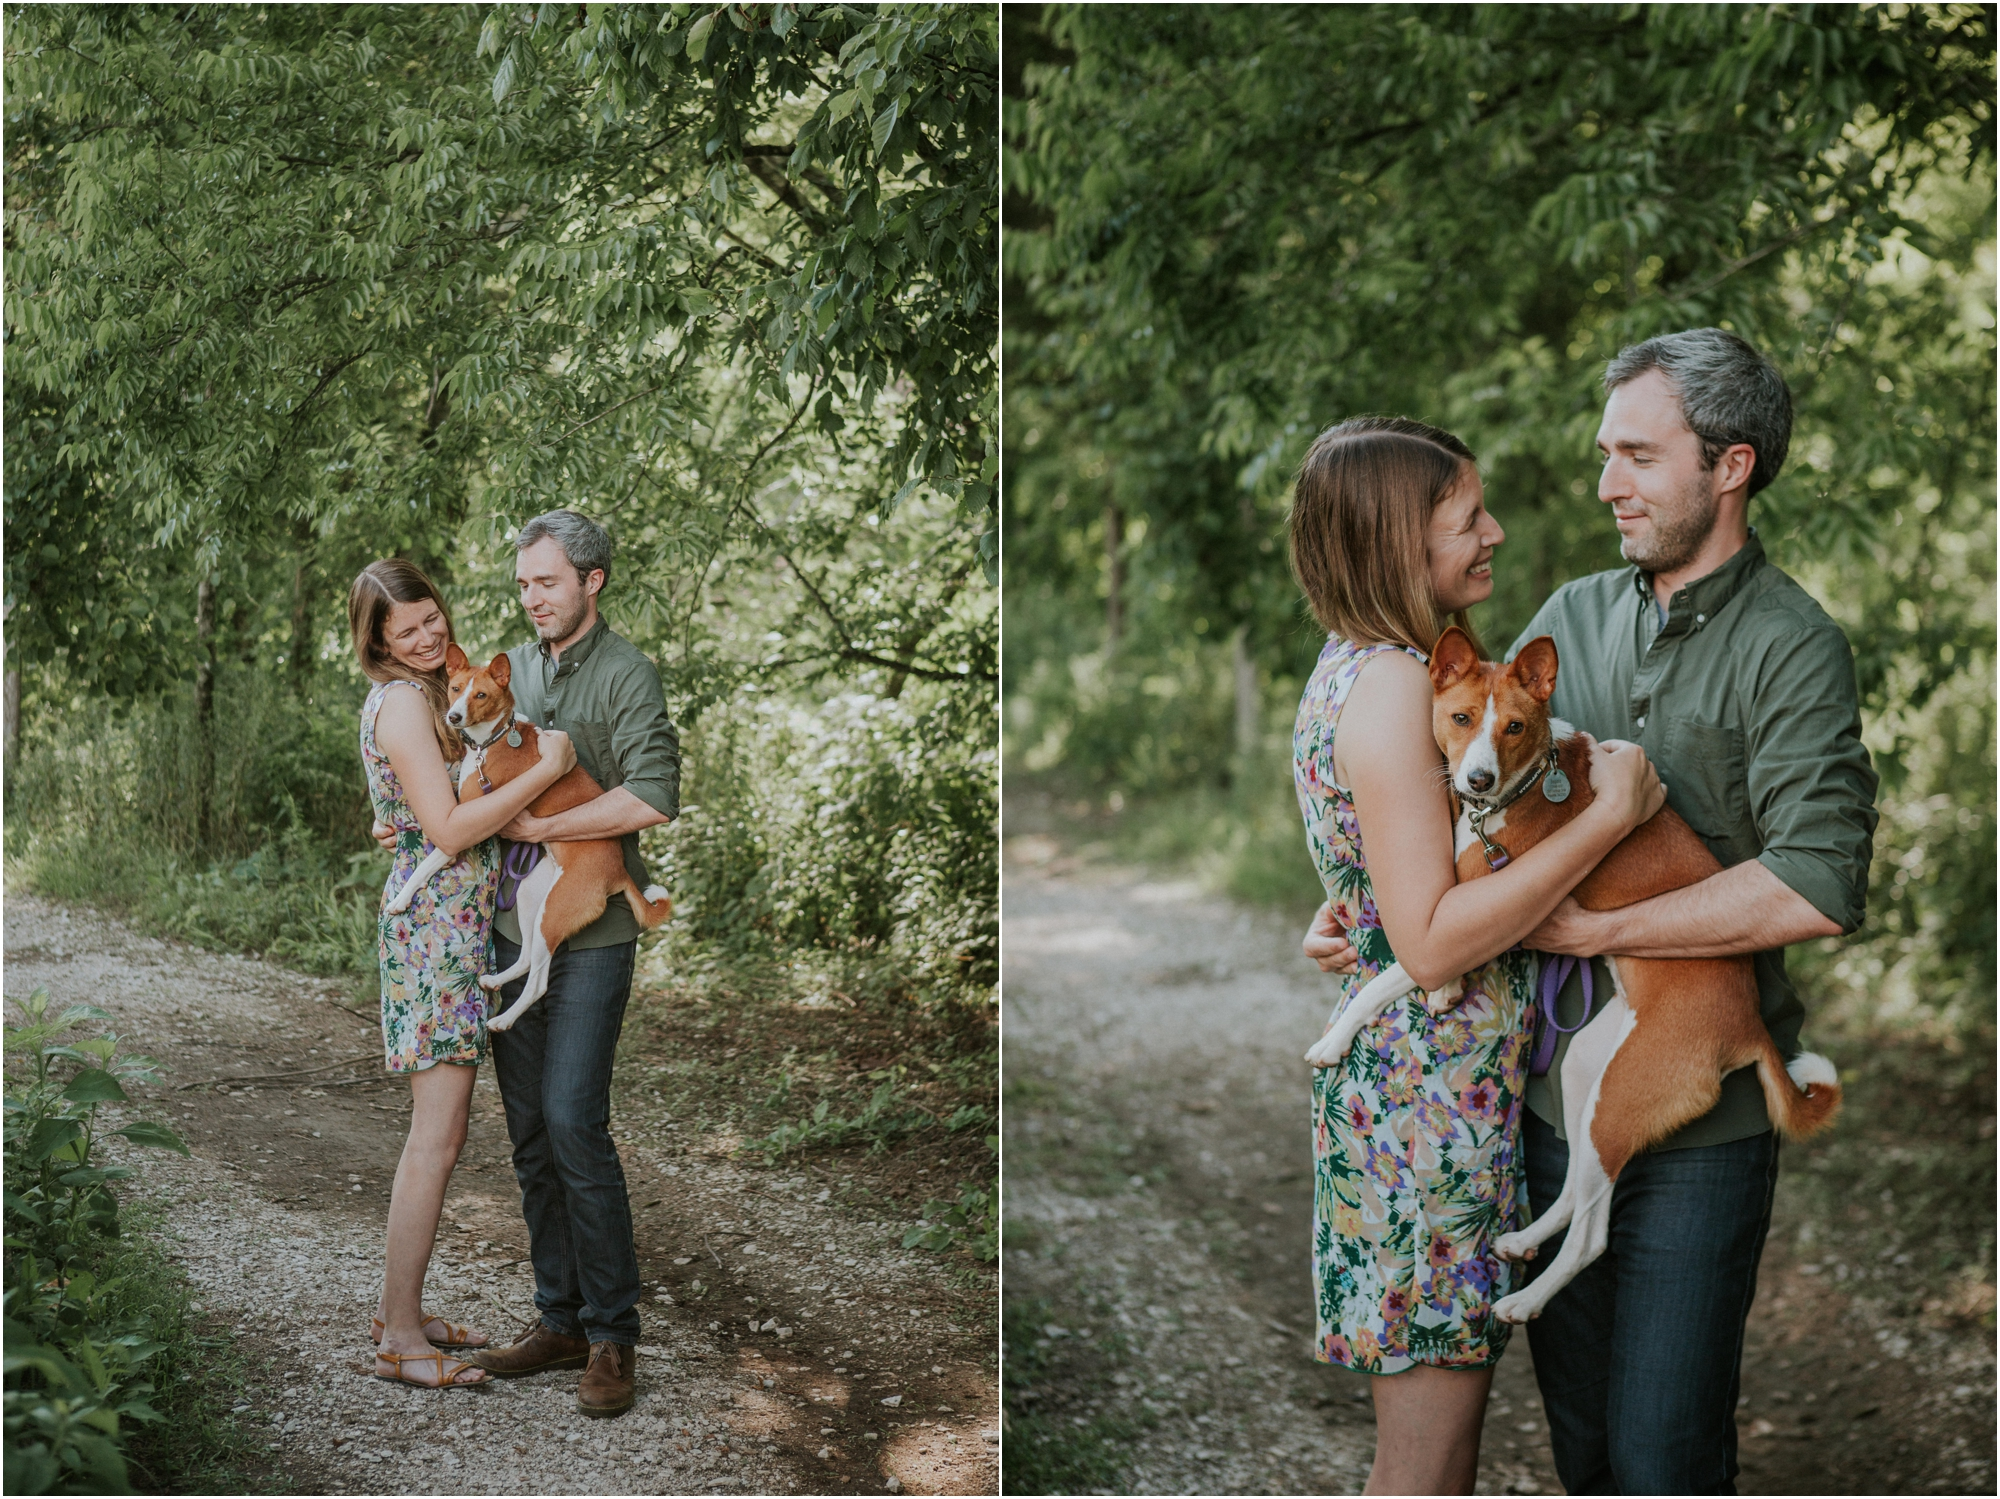 meads-quarry-ijams-nature-center-knoxville-tennessee-engagement-session-summer-northeast-tn-adventurous-outdoors-lake-katy-sergent_0002.jpg